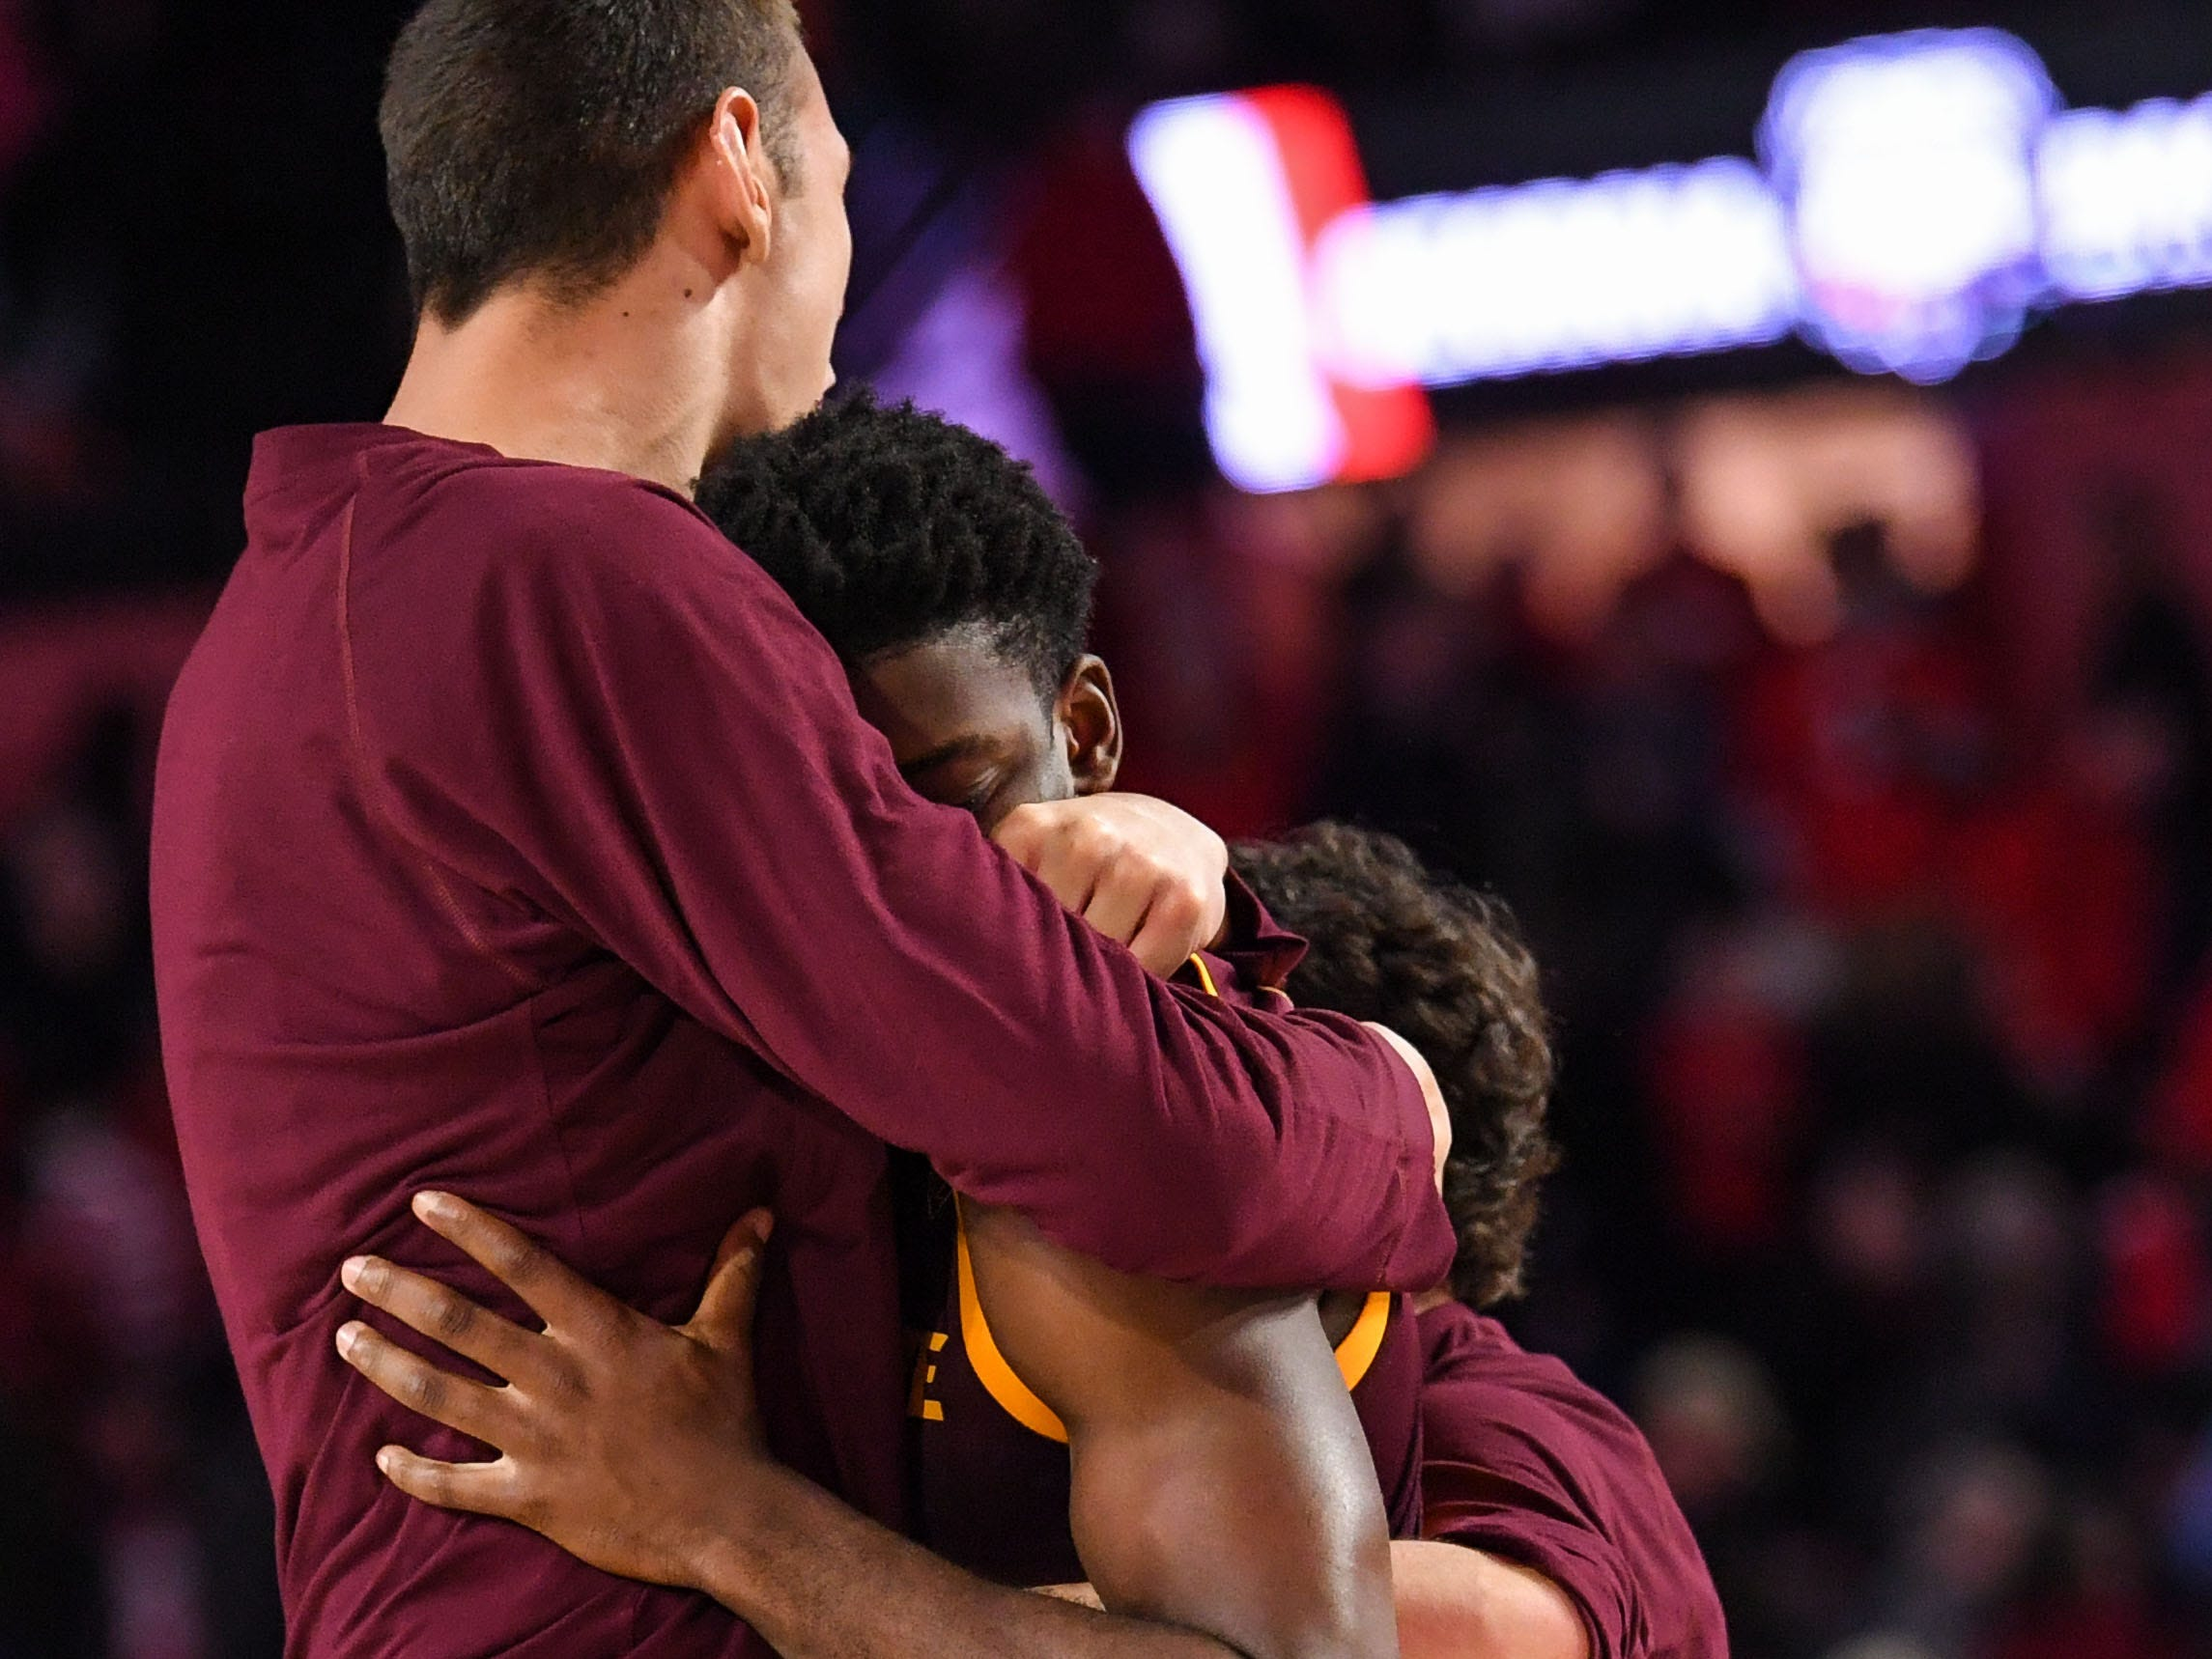 Dec 15, 2018; Athens, GA, USA; Arizona State Sun Devils guard Luguentz Dort (0) (center) is hugged by teammates after the Sun Devils defeated the Georgia Bulldogs  at Stegeman Coliseum.